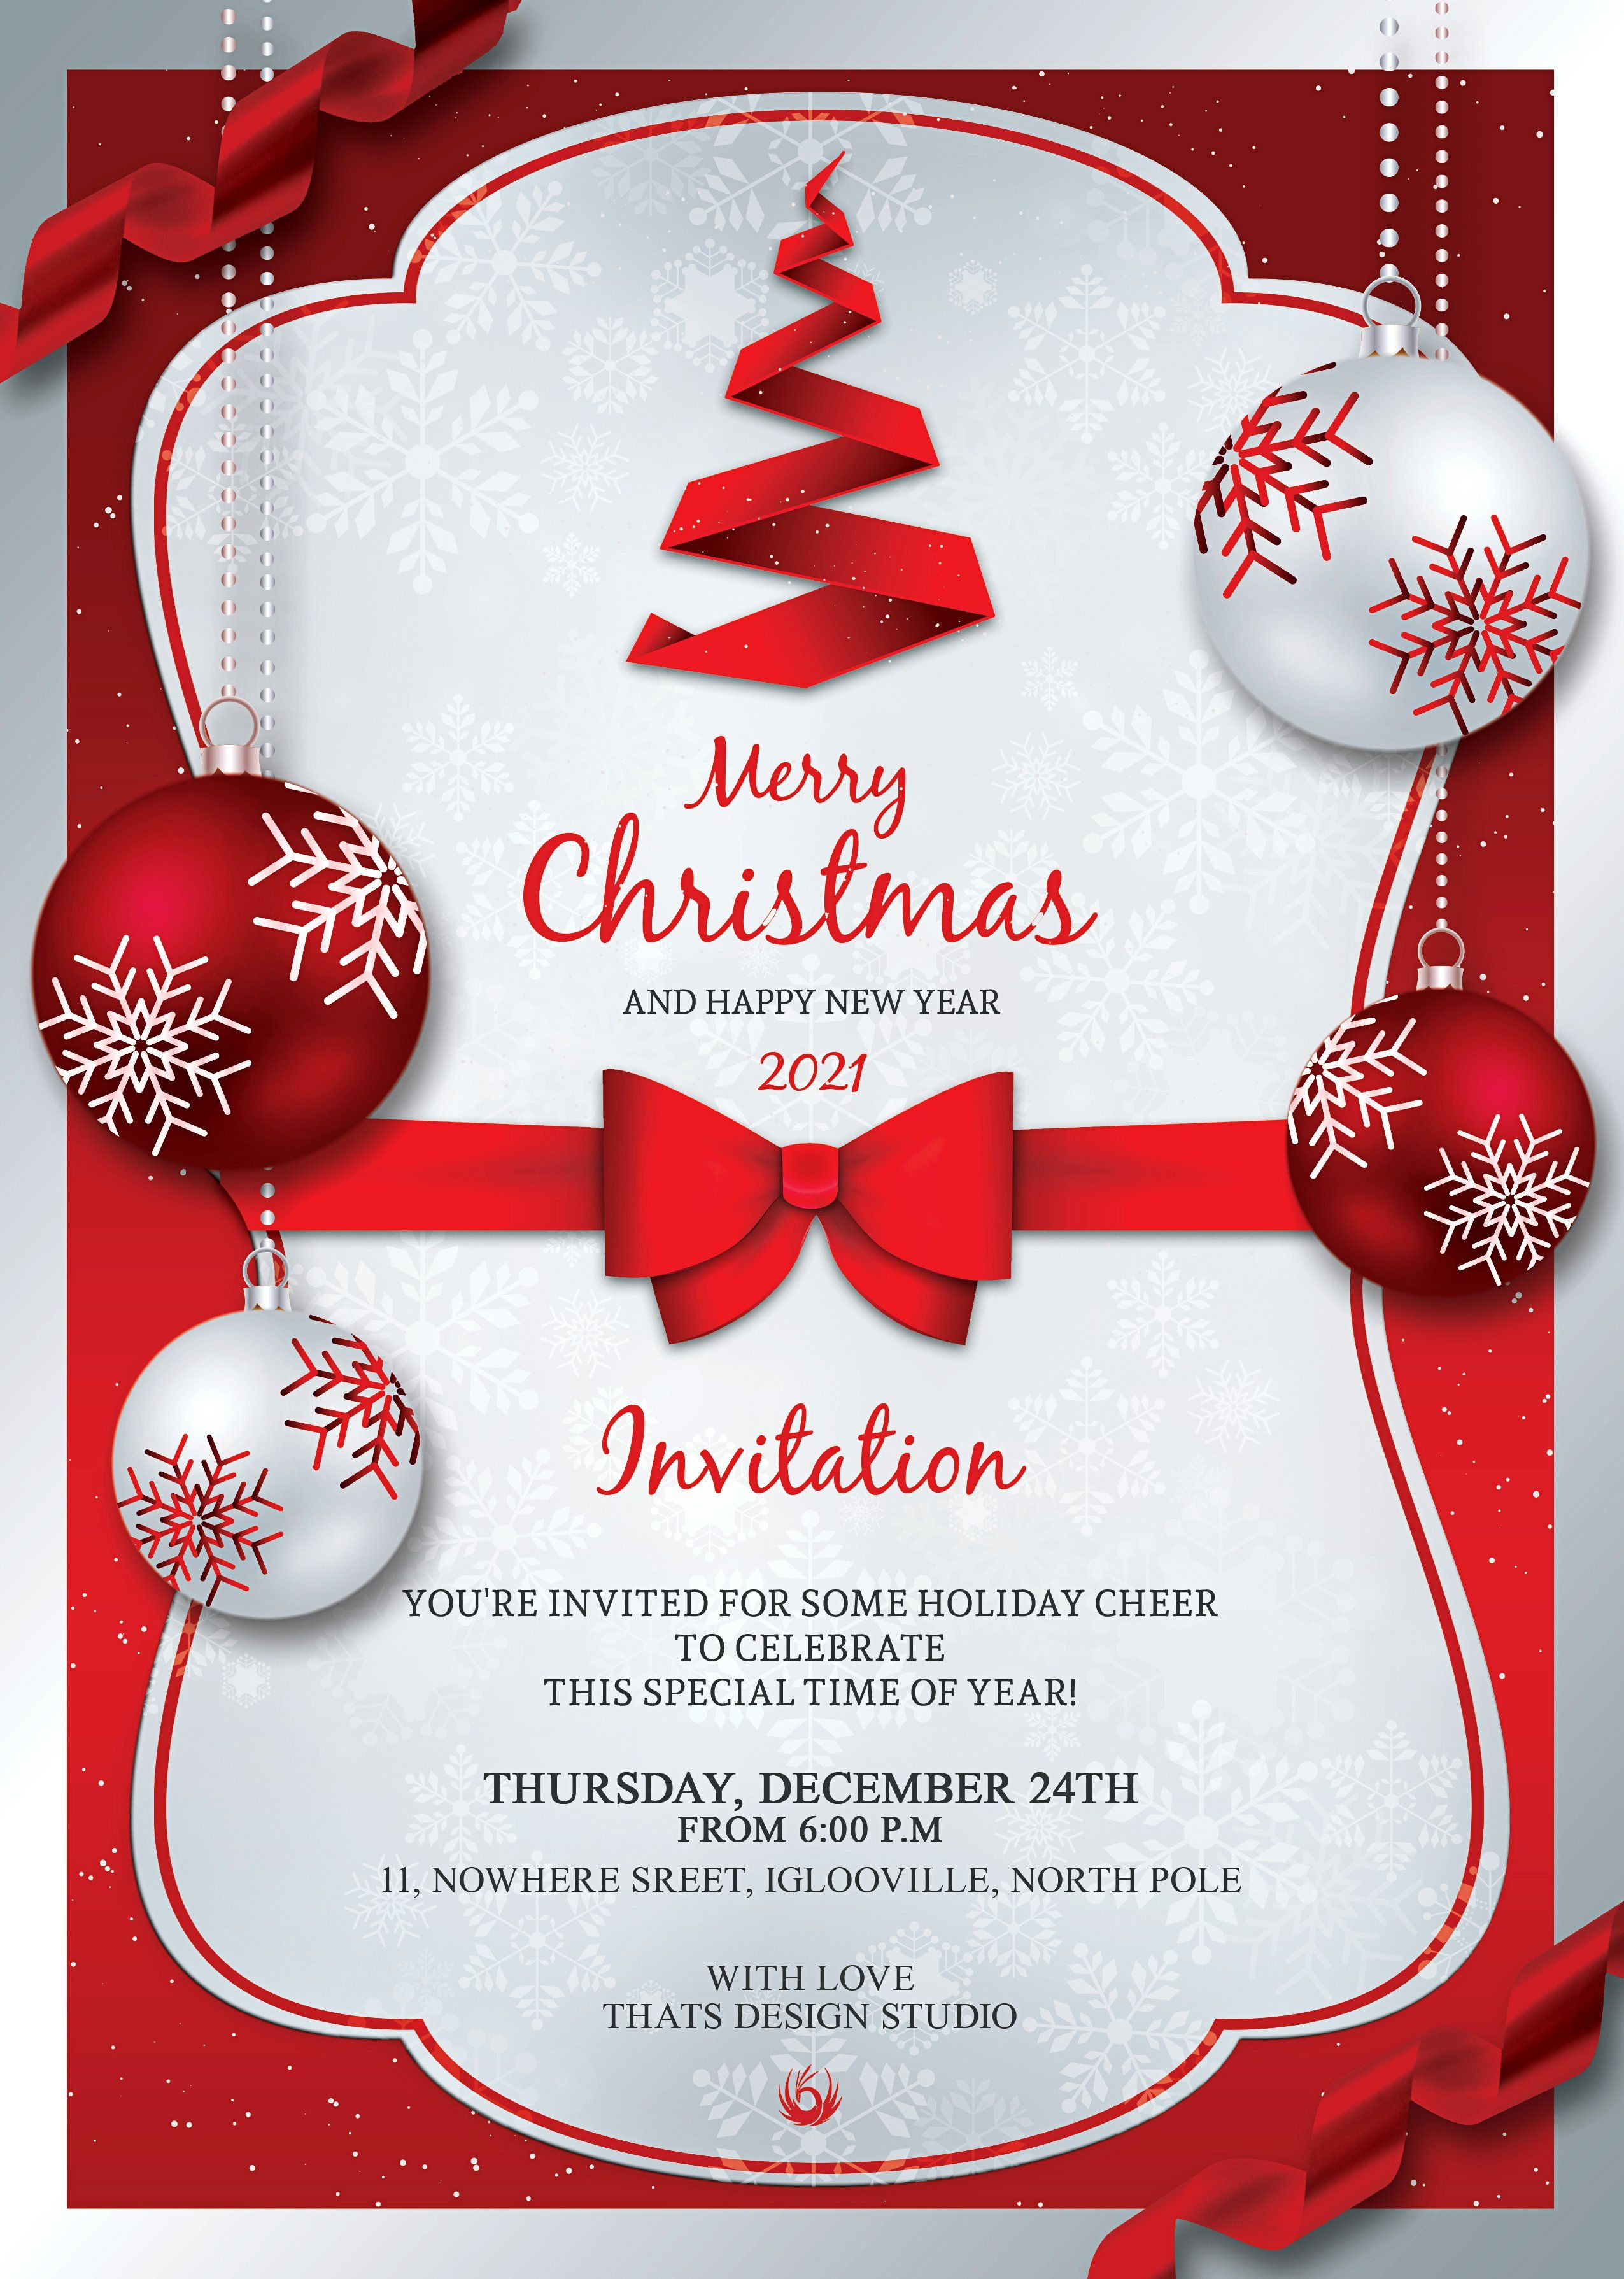 Christmas Invitation Template V4 33976 Card And Invites Design Bundles In 2021 Christmas Party Invitation Template Christmas Invitations Template Free Christmas Invitation Templates